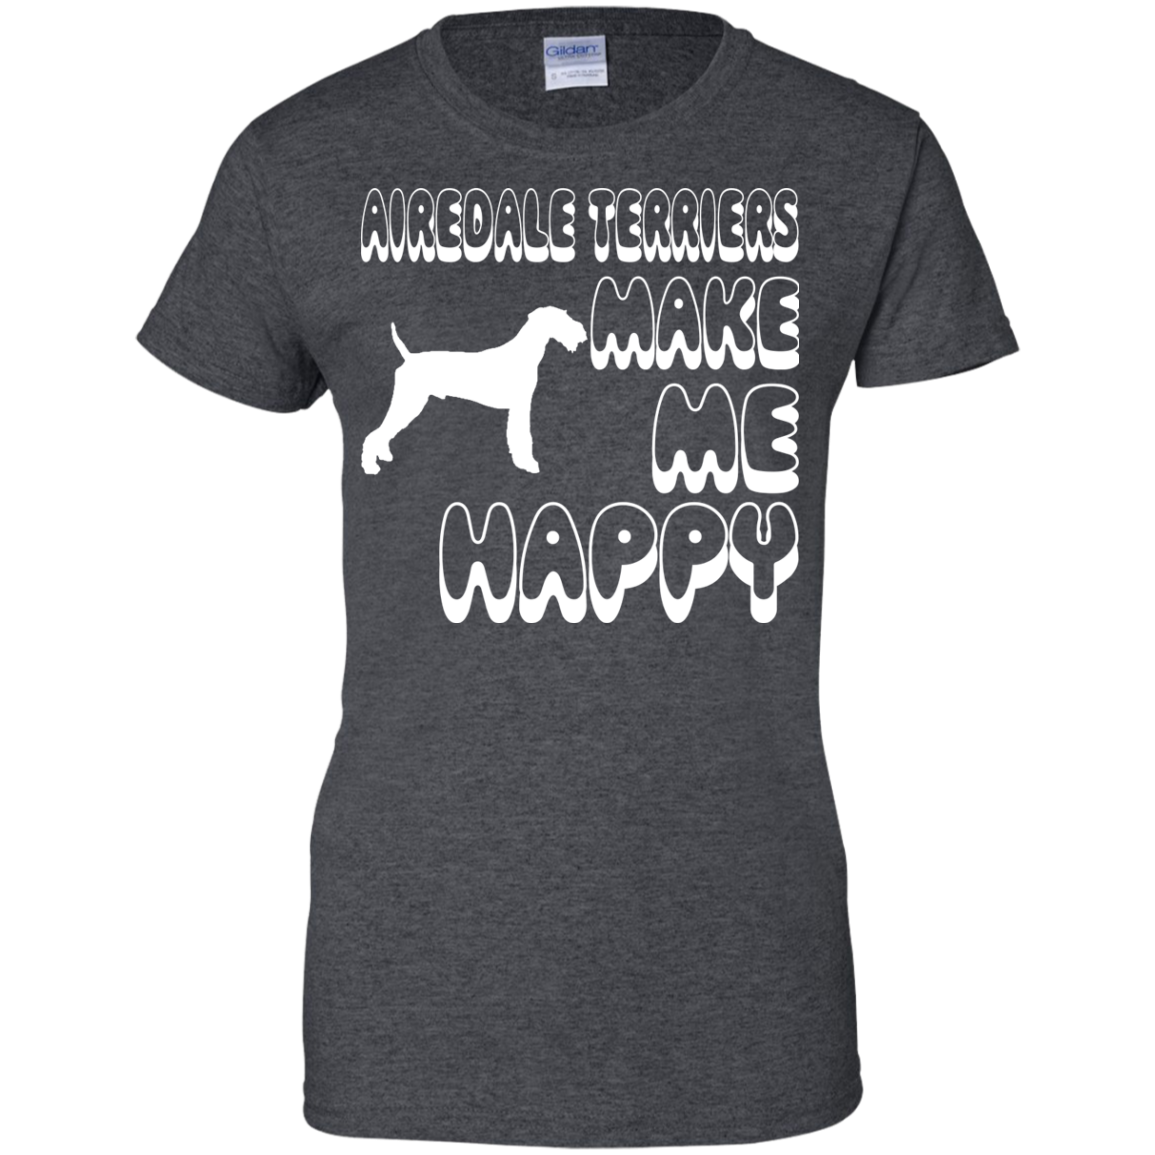 Airedale Terriers Make Me Happy Ladies Tees